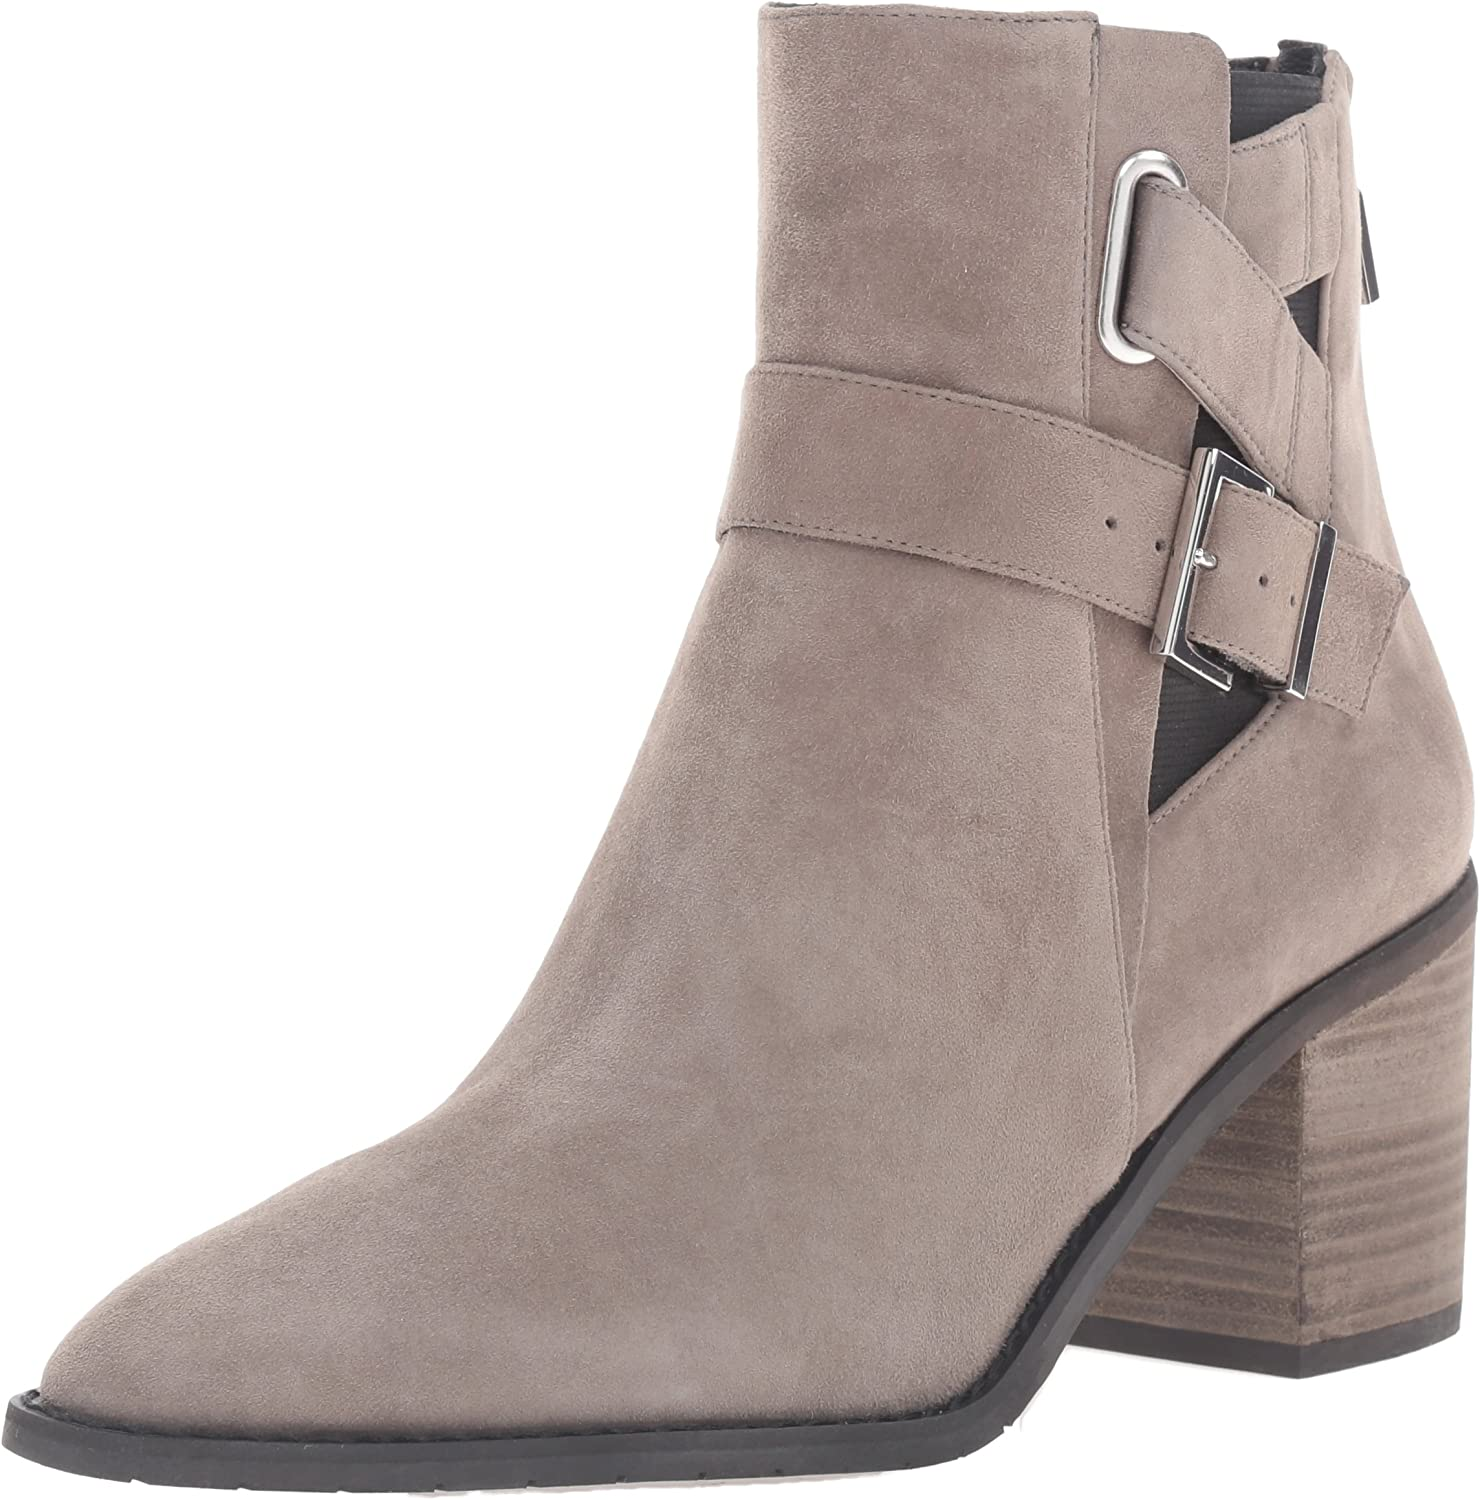 Kenneth Cole New York Women's Quincie Ankle Bootie